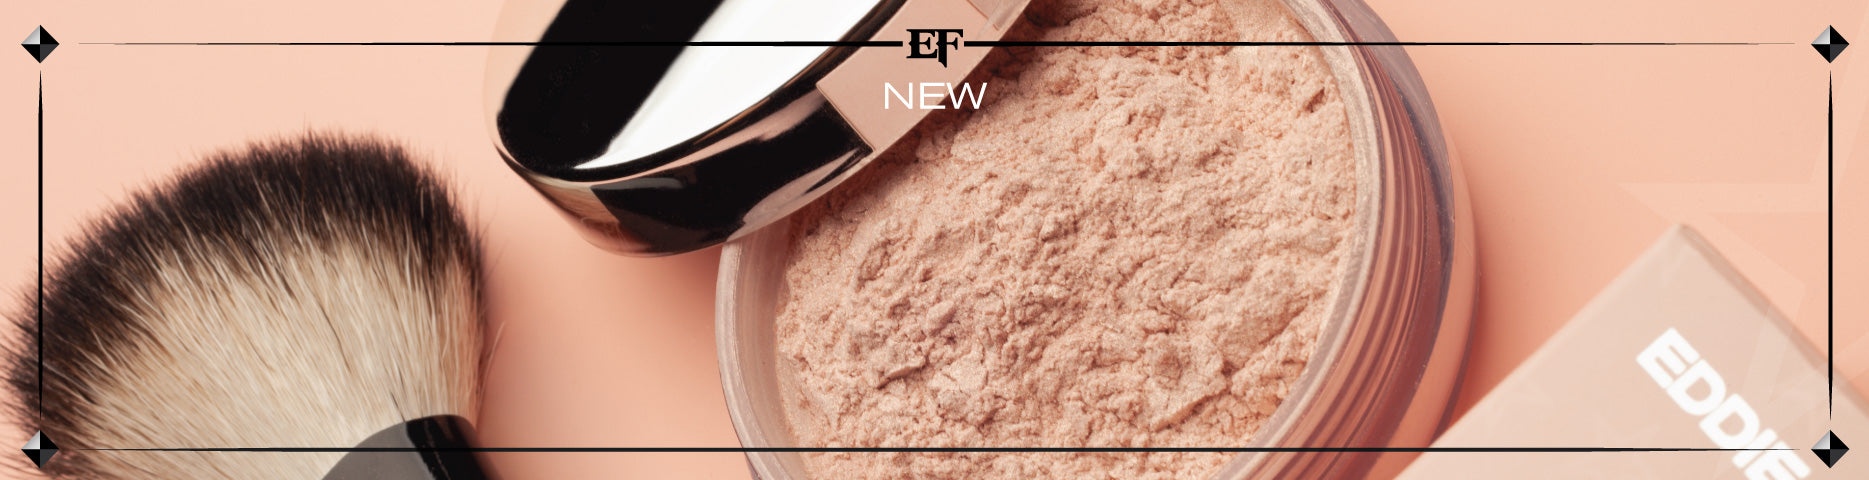 EDDIE FUNKHOUSER Cosmetics New Products!